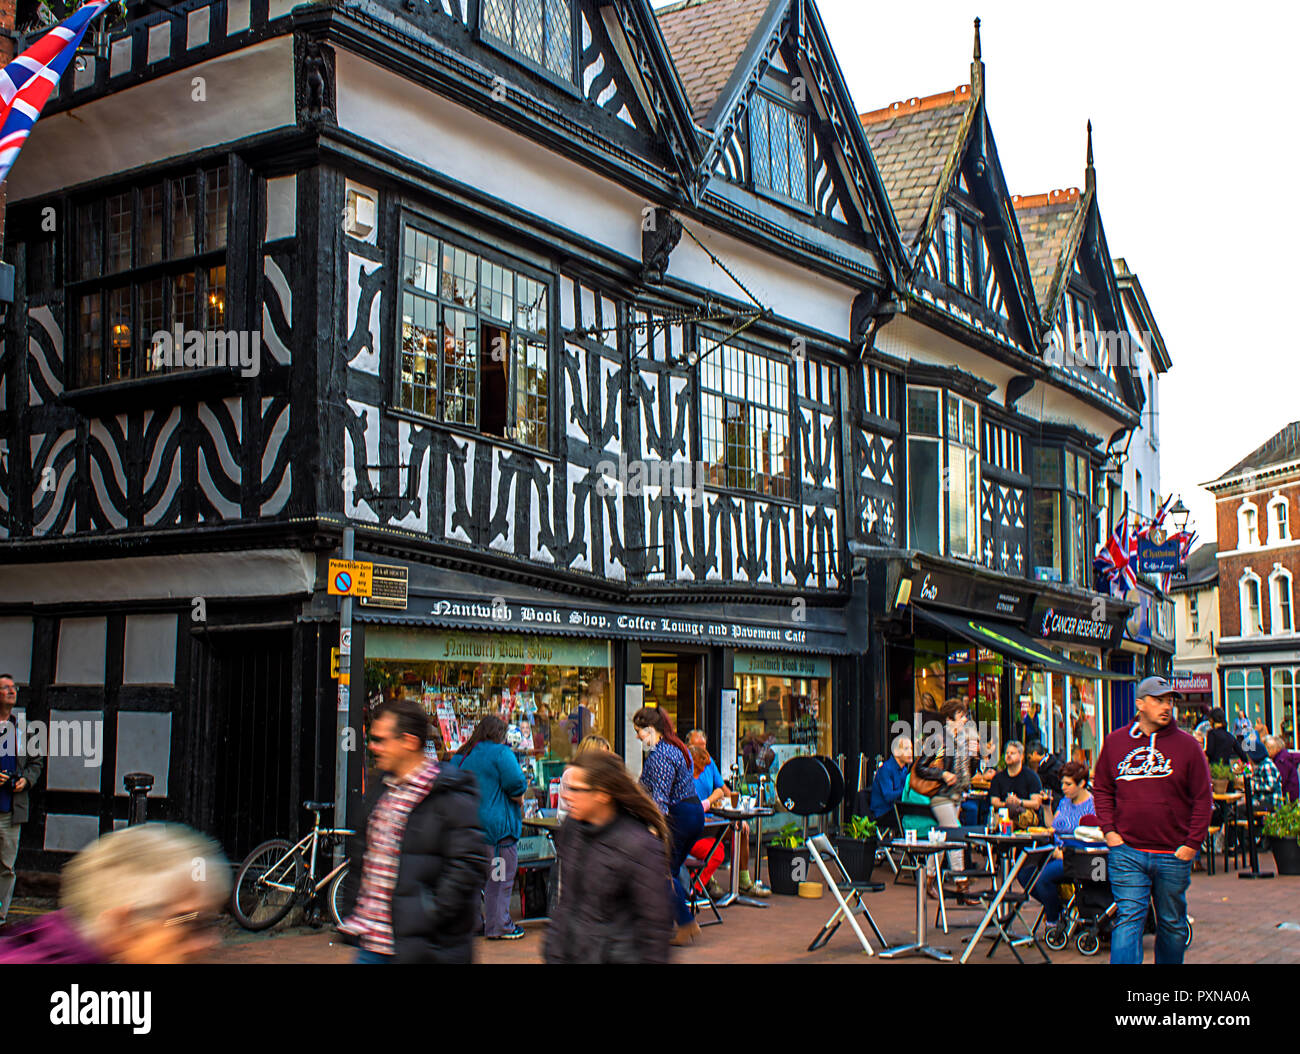 Bustling crowds outside the tudor shops in Nantwich High Street, Cheshire, UK - Stock Image